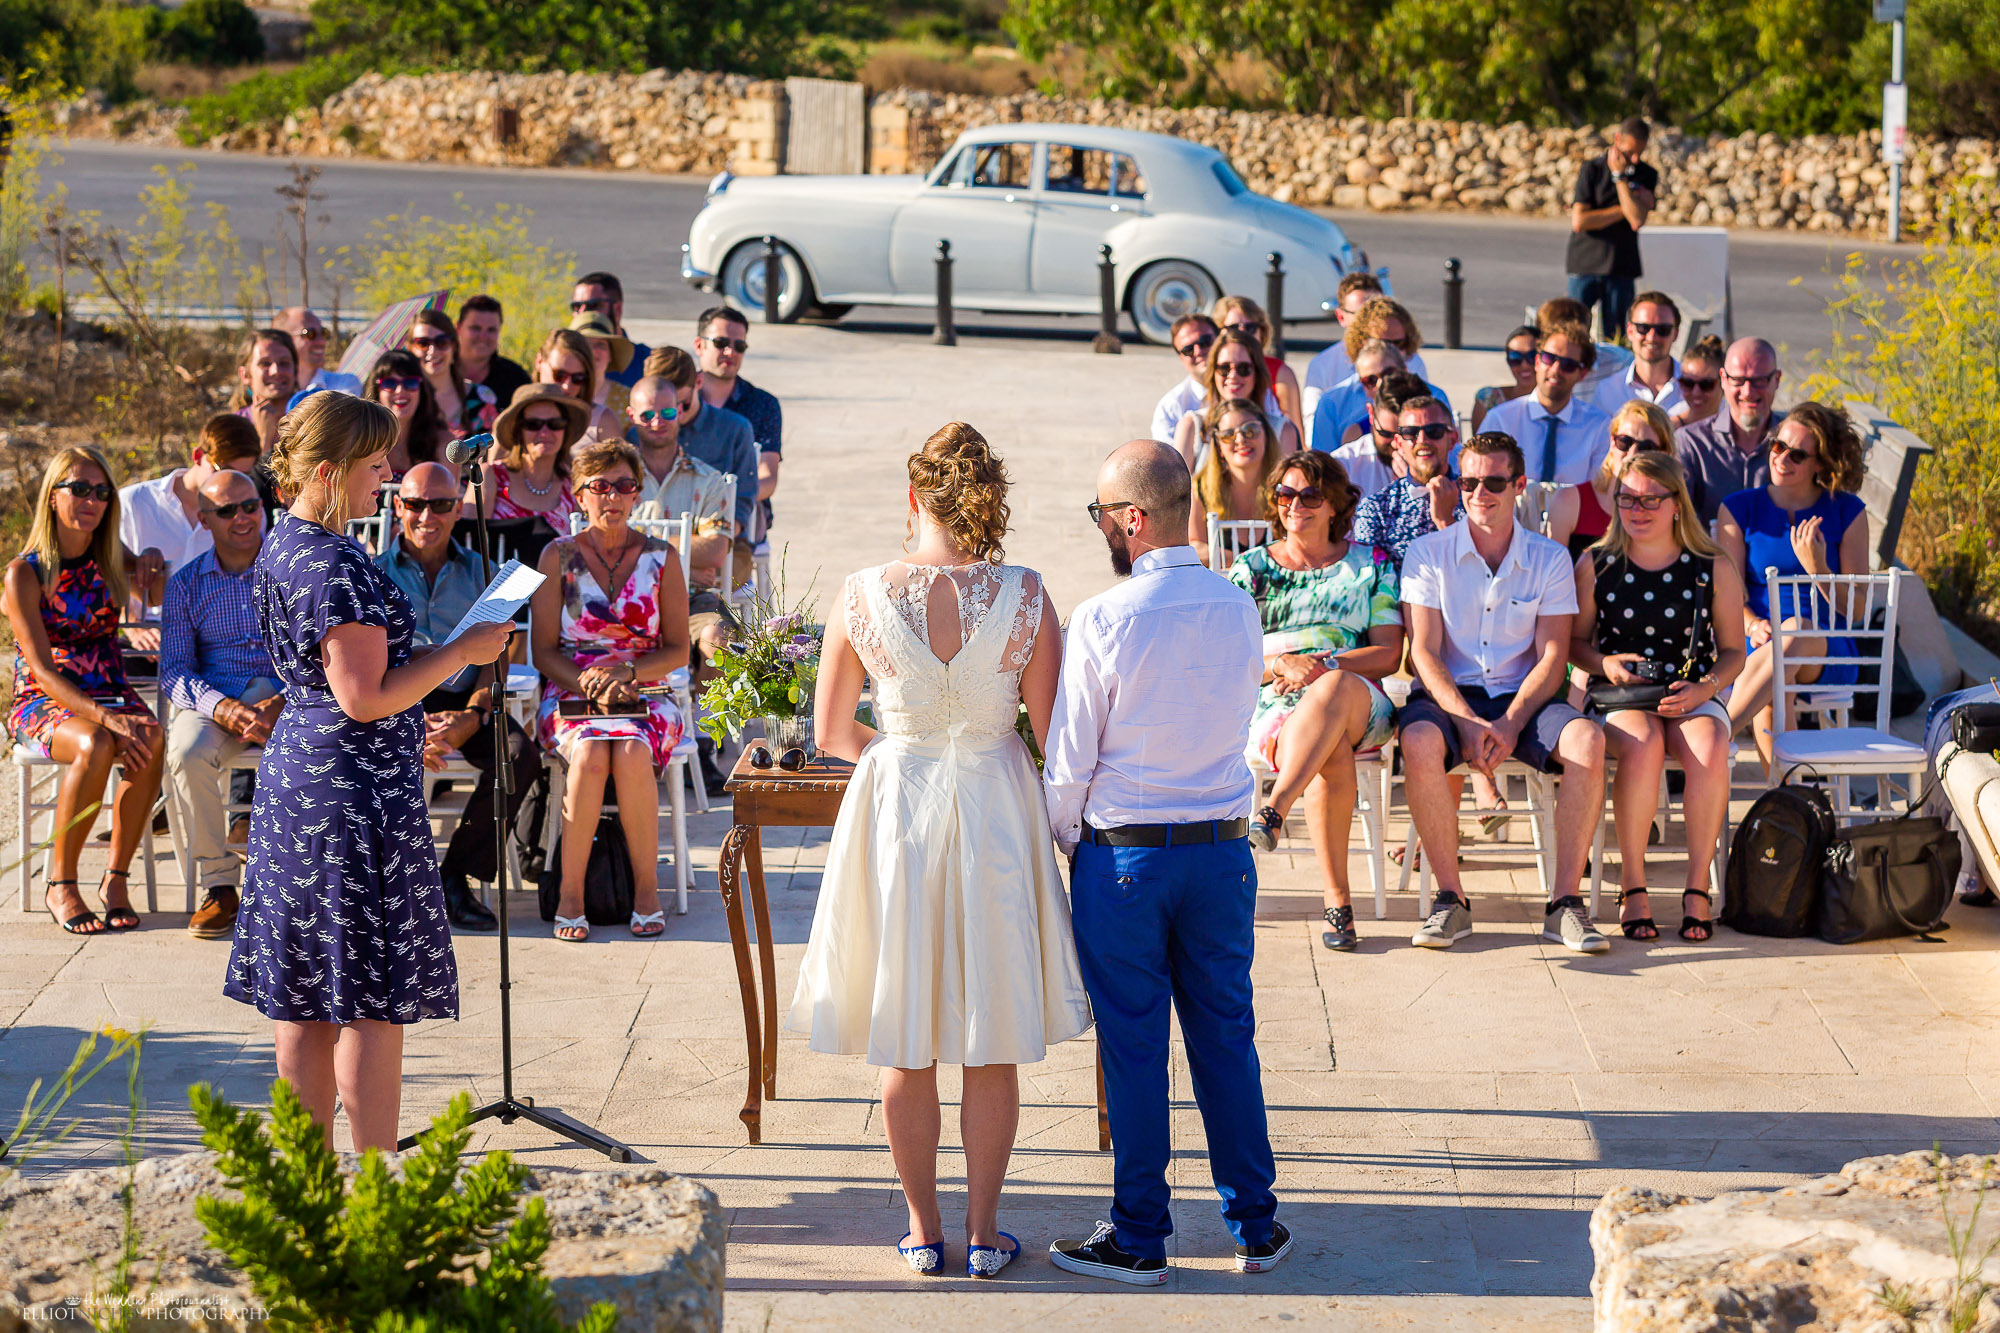 Wedding guest reading during the wedding blessing ceremony. North East and destination wedding photographer Elliot Nichol.